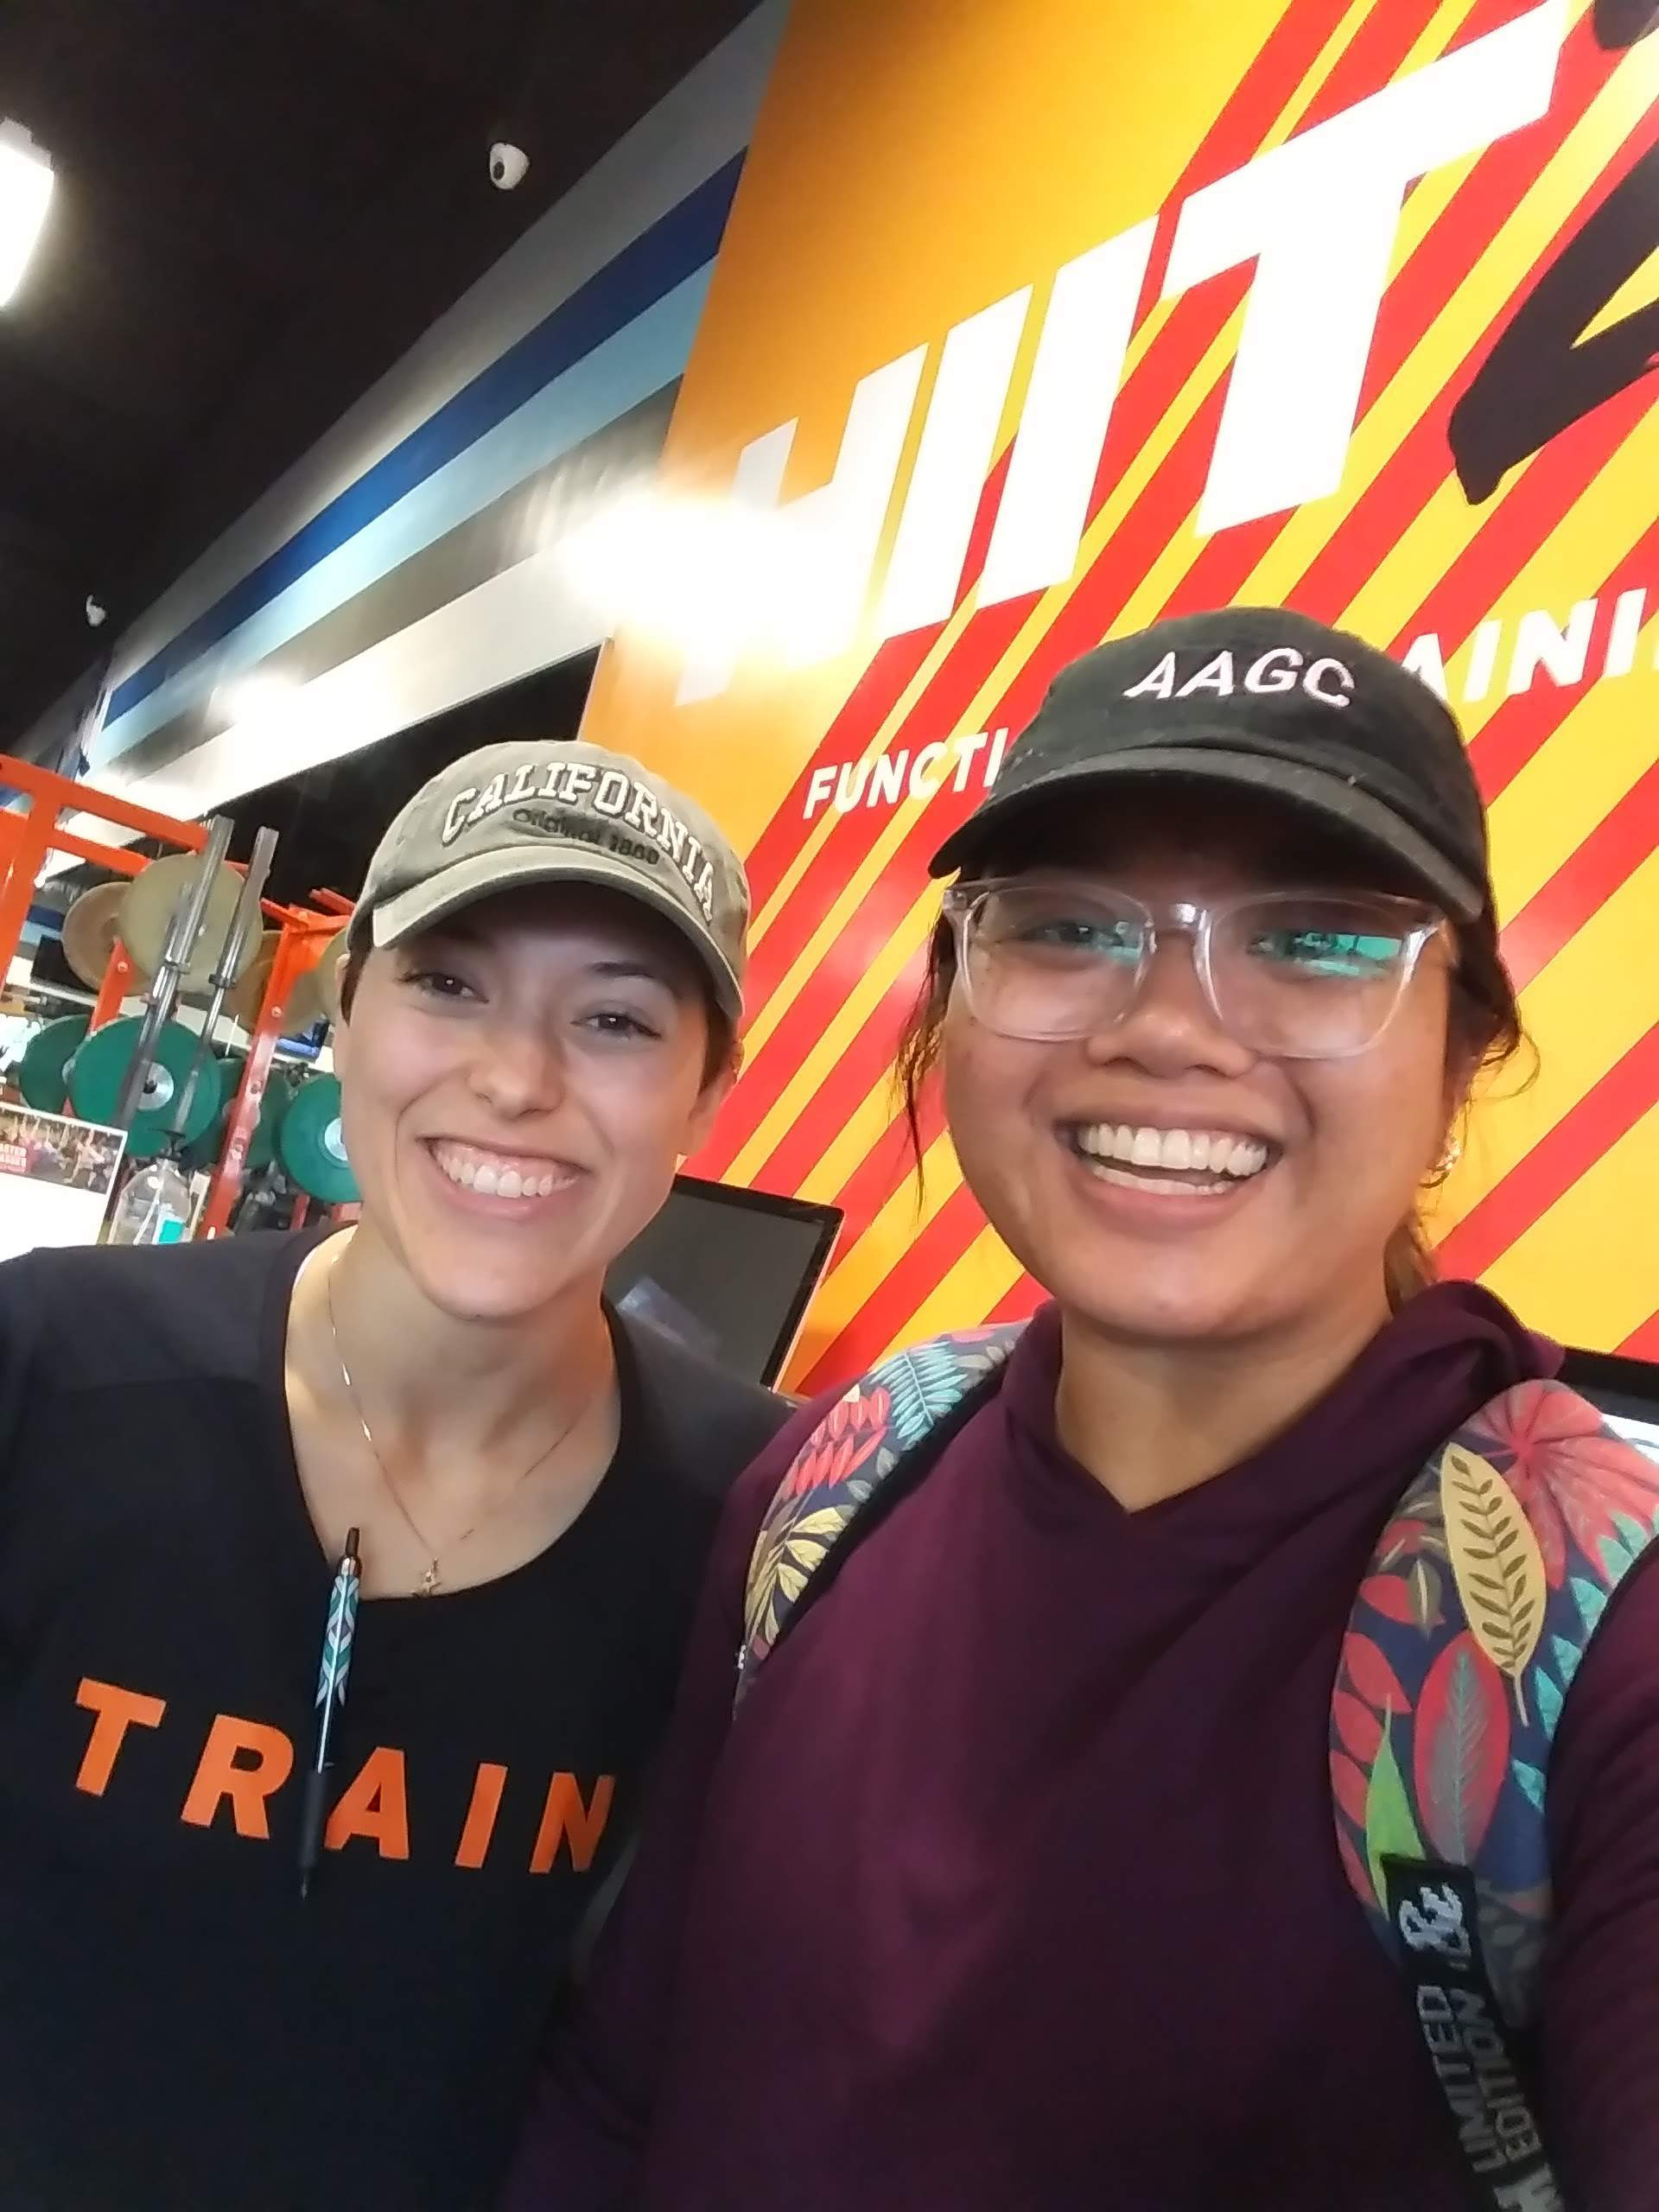 Last day with my trainer and friend Xi! We literally share the same appreciation for hats, backpacks, and fitness memes haha